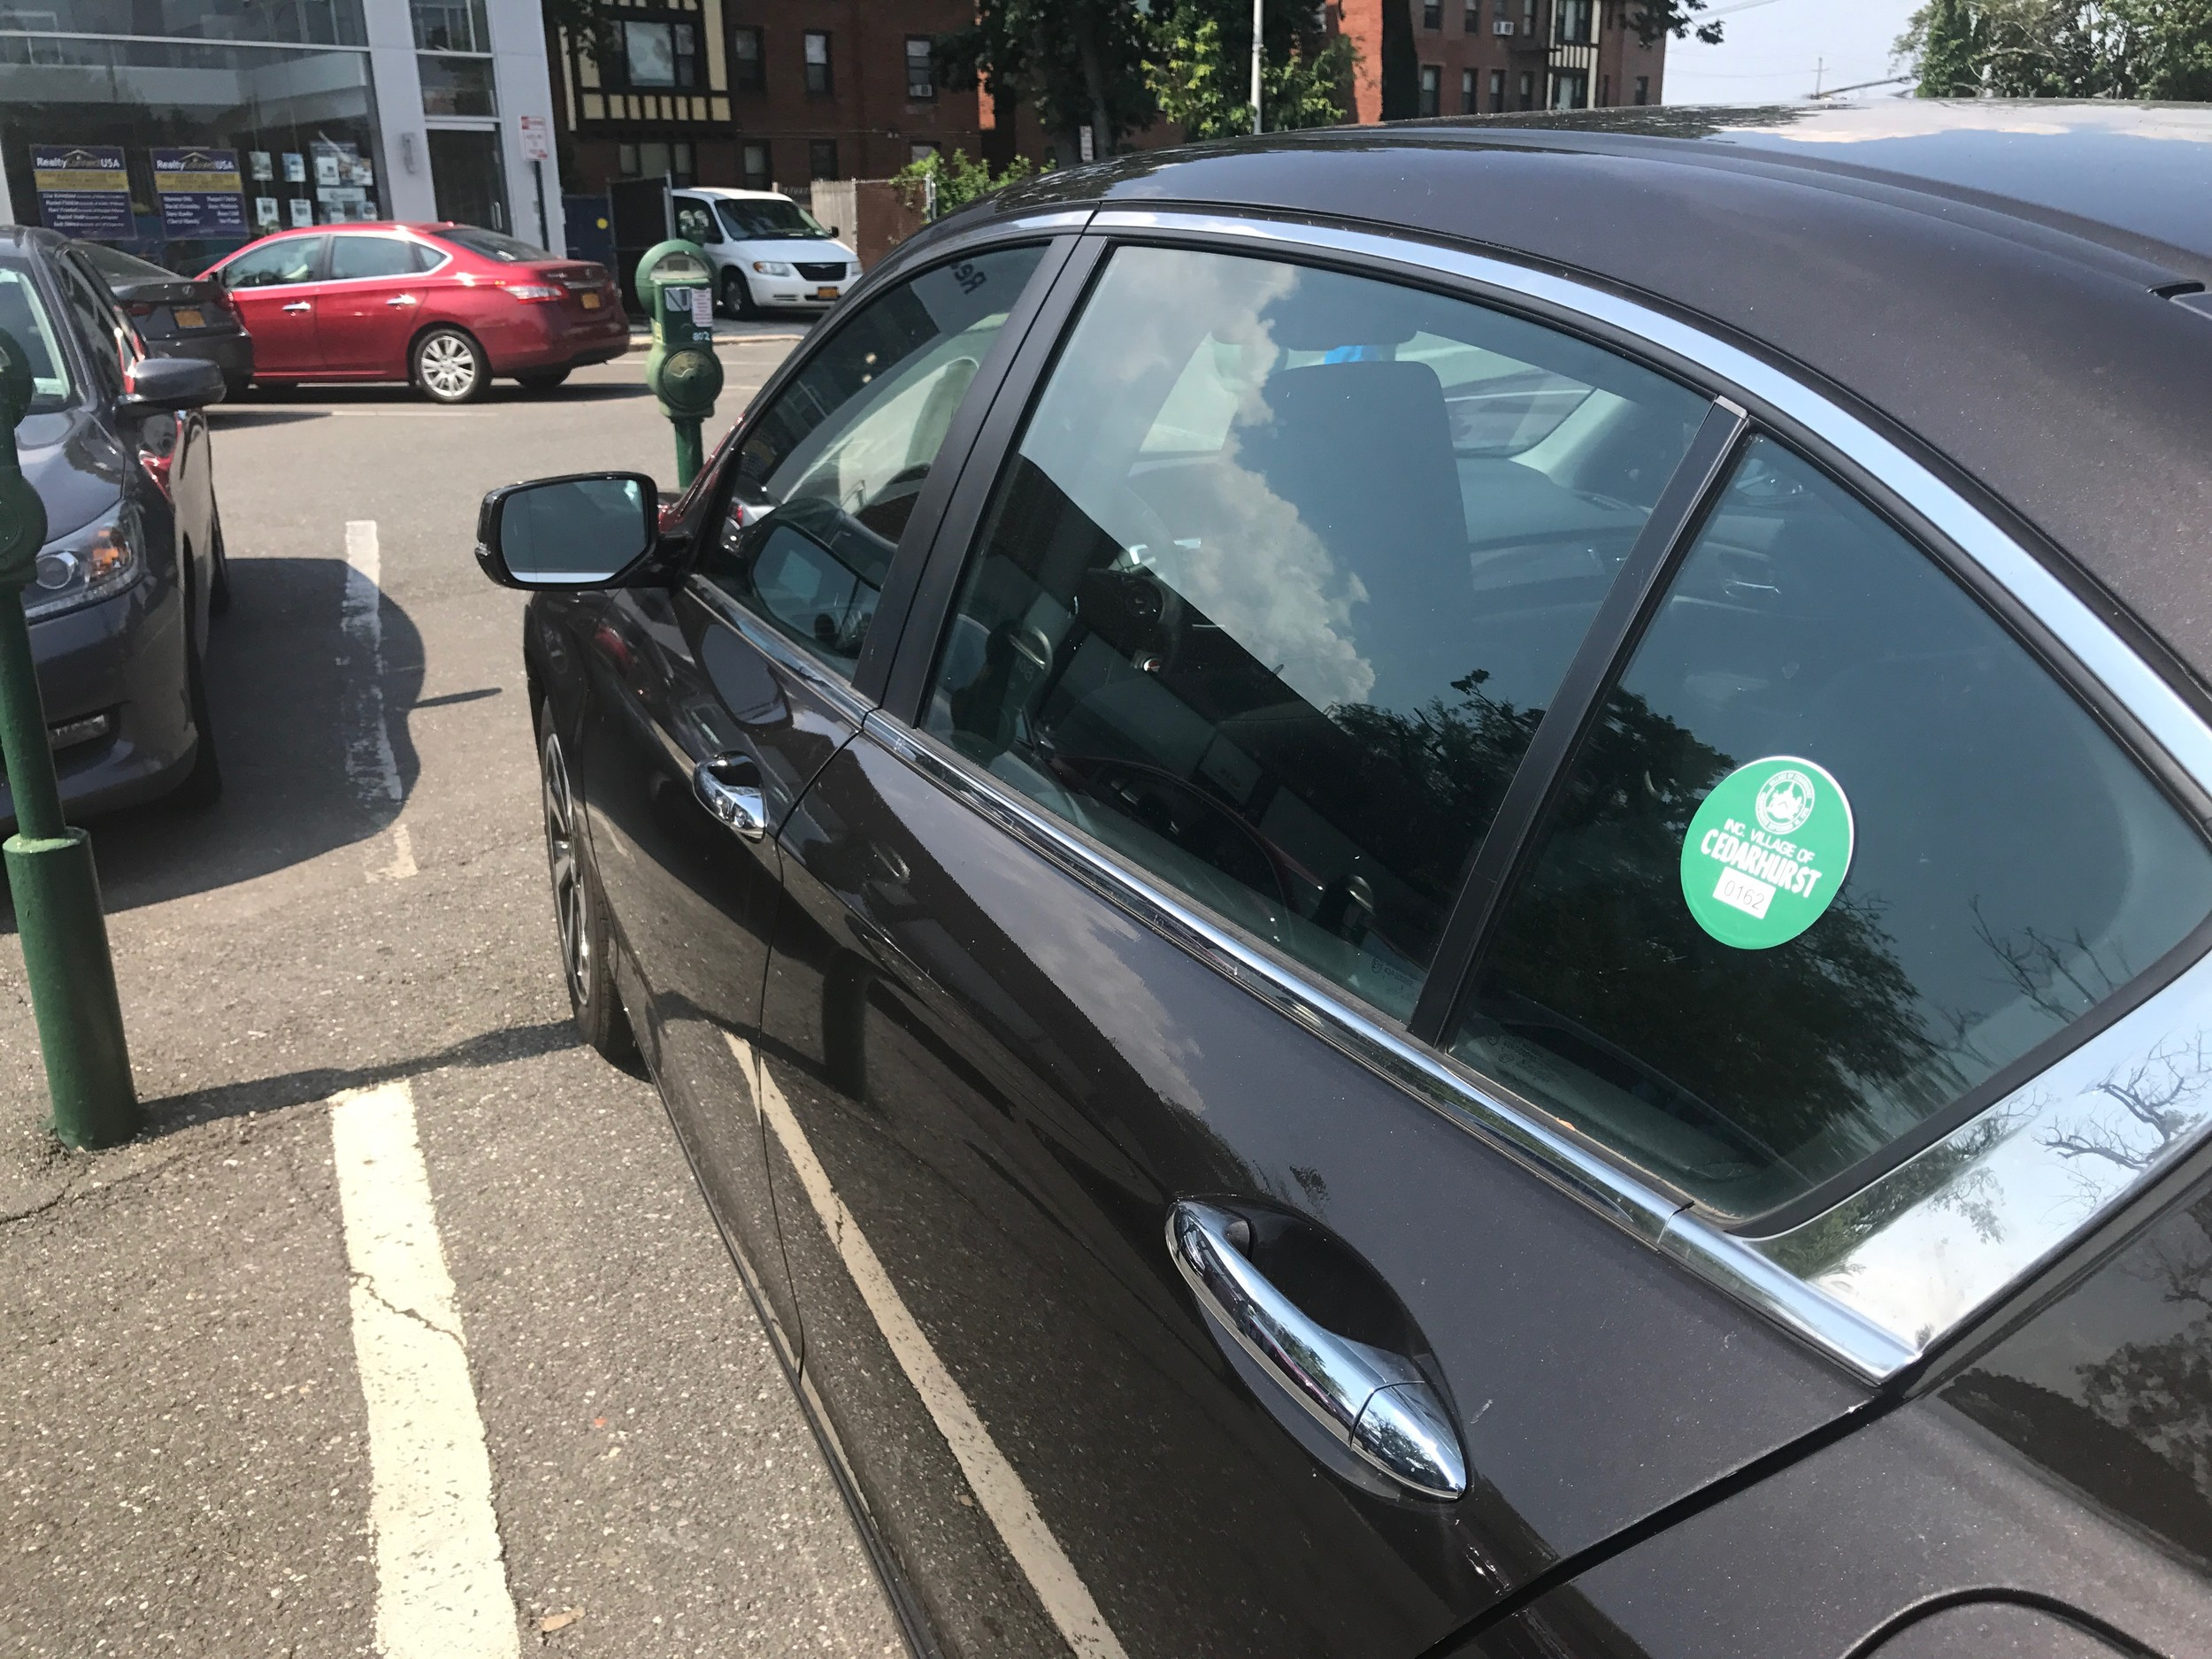 Some Cedarhurst residents with permits have had to use metered parking spaces in recent weeks.